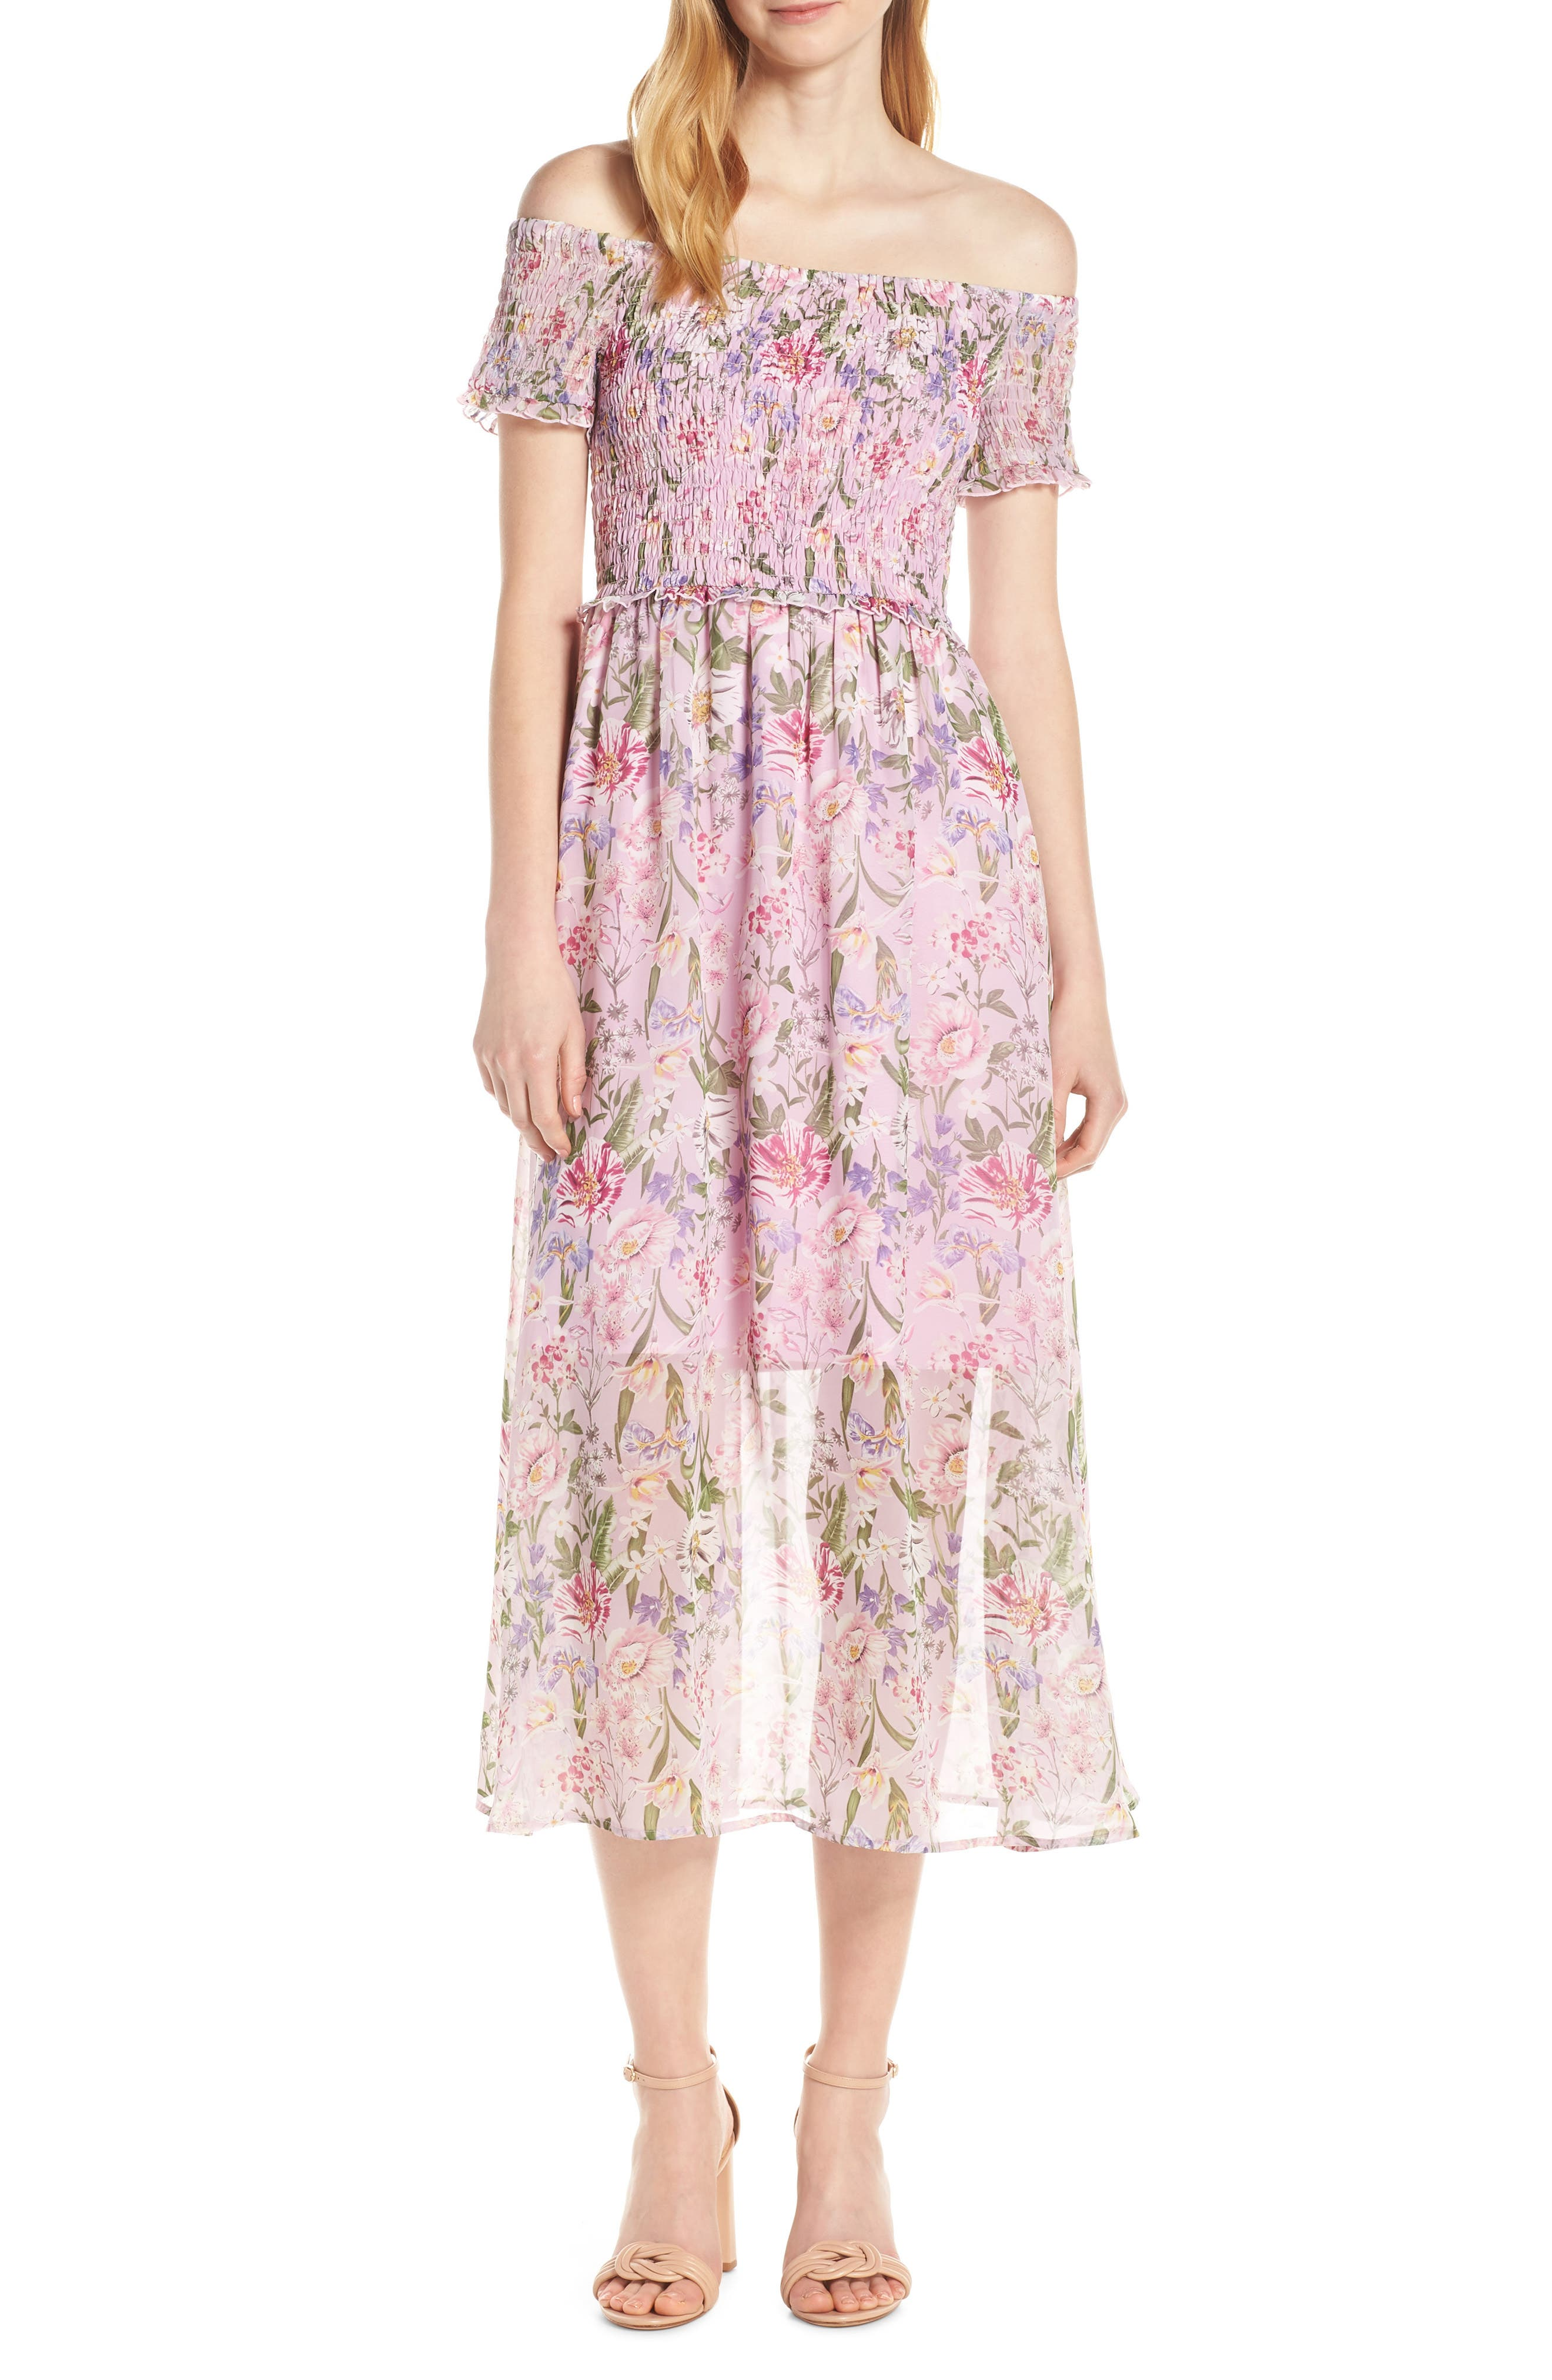 Sam Edelman Smocked Off The Shoulder Dress, Pink